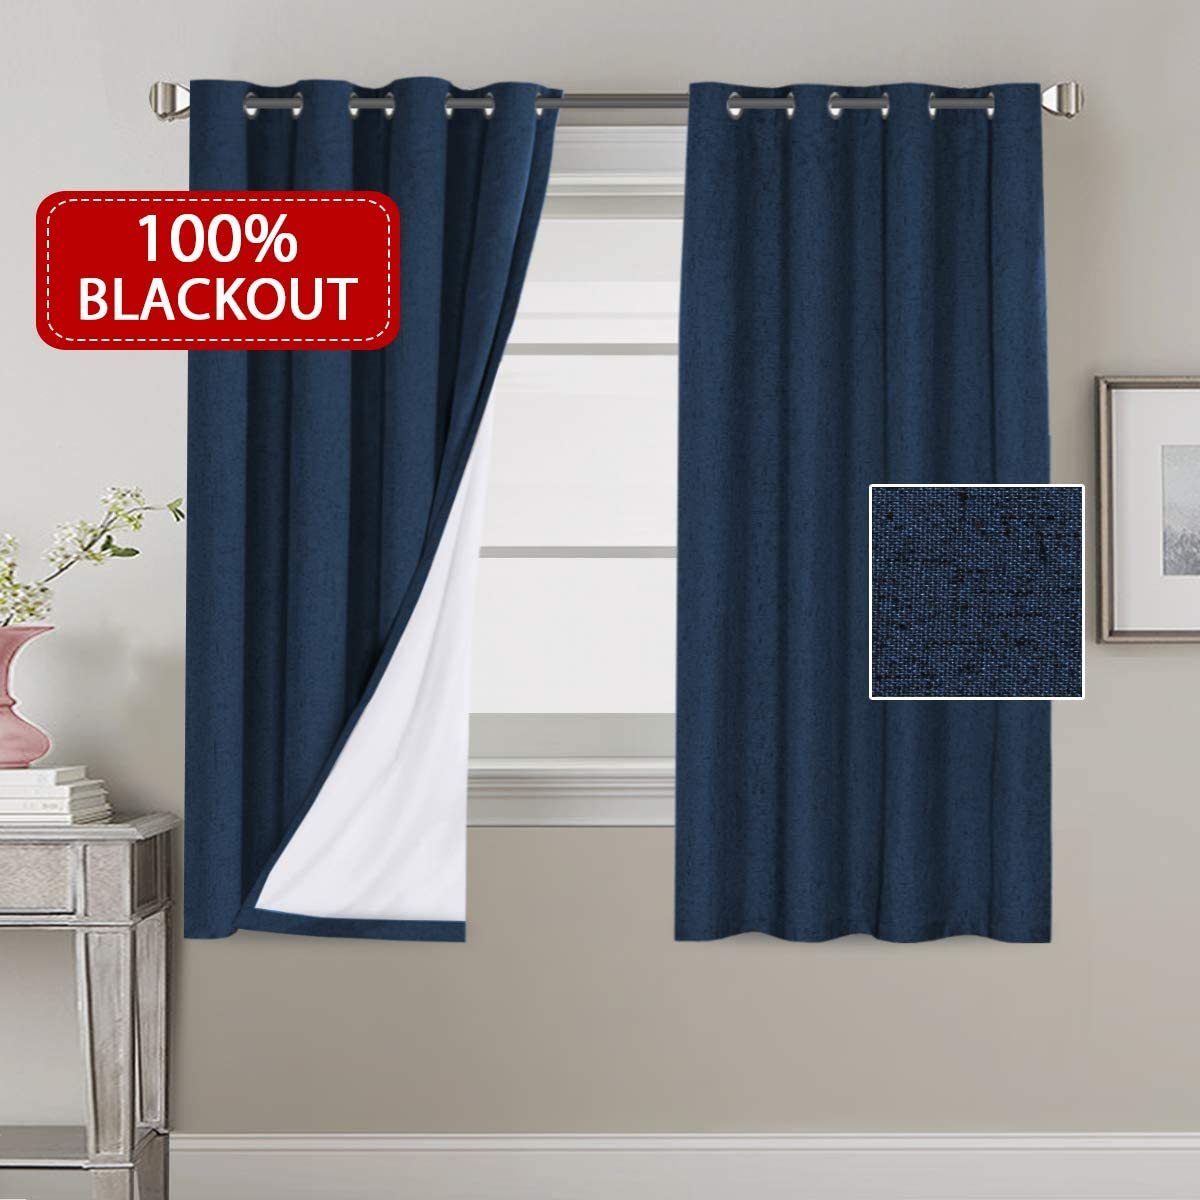 H.VERSAILTEX 100% Blackout Faux Linen Thermal Curtains for Bedroom Energy Efficient Lined Blackout Drapes Window Treatment Set 52 x 63 inches Curtain Panel Grommet Top, Navy, Sold by Pair